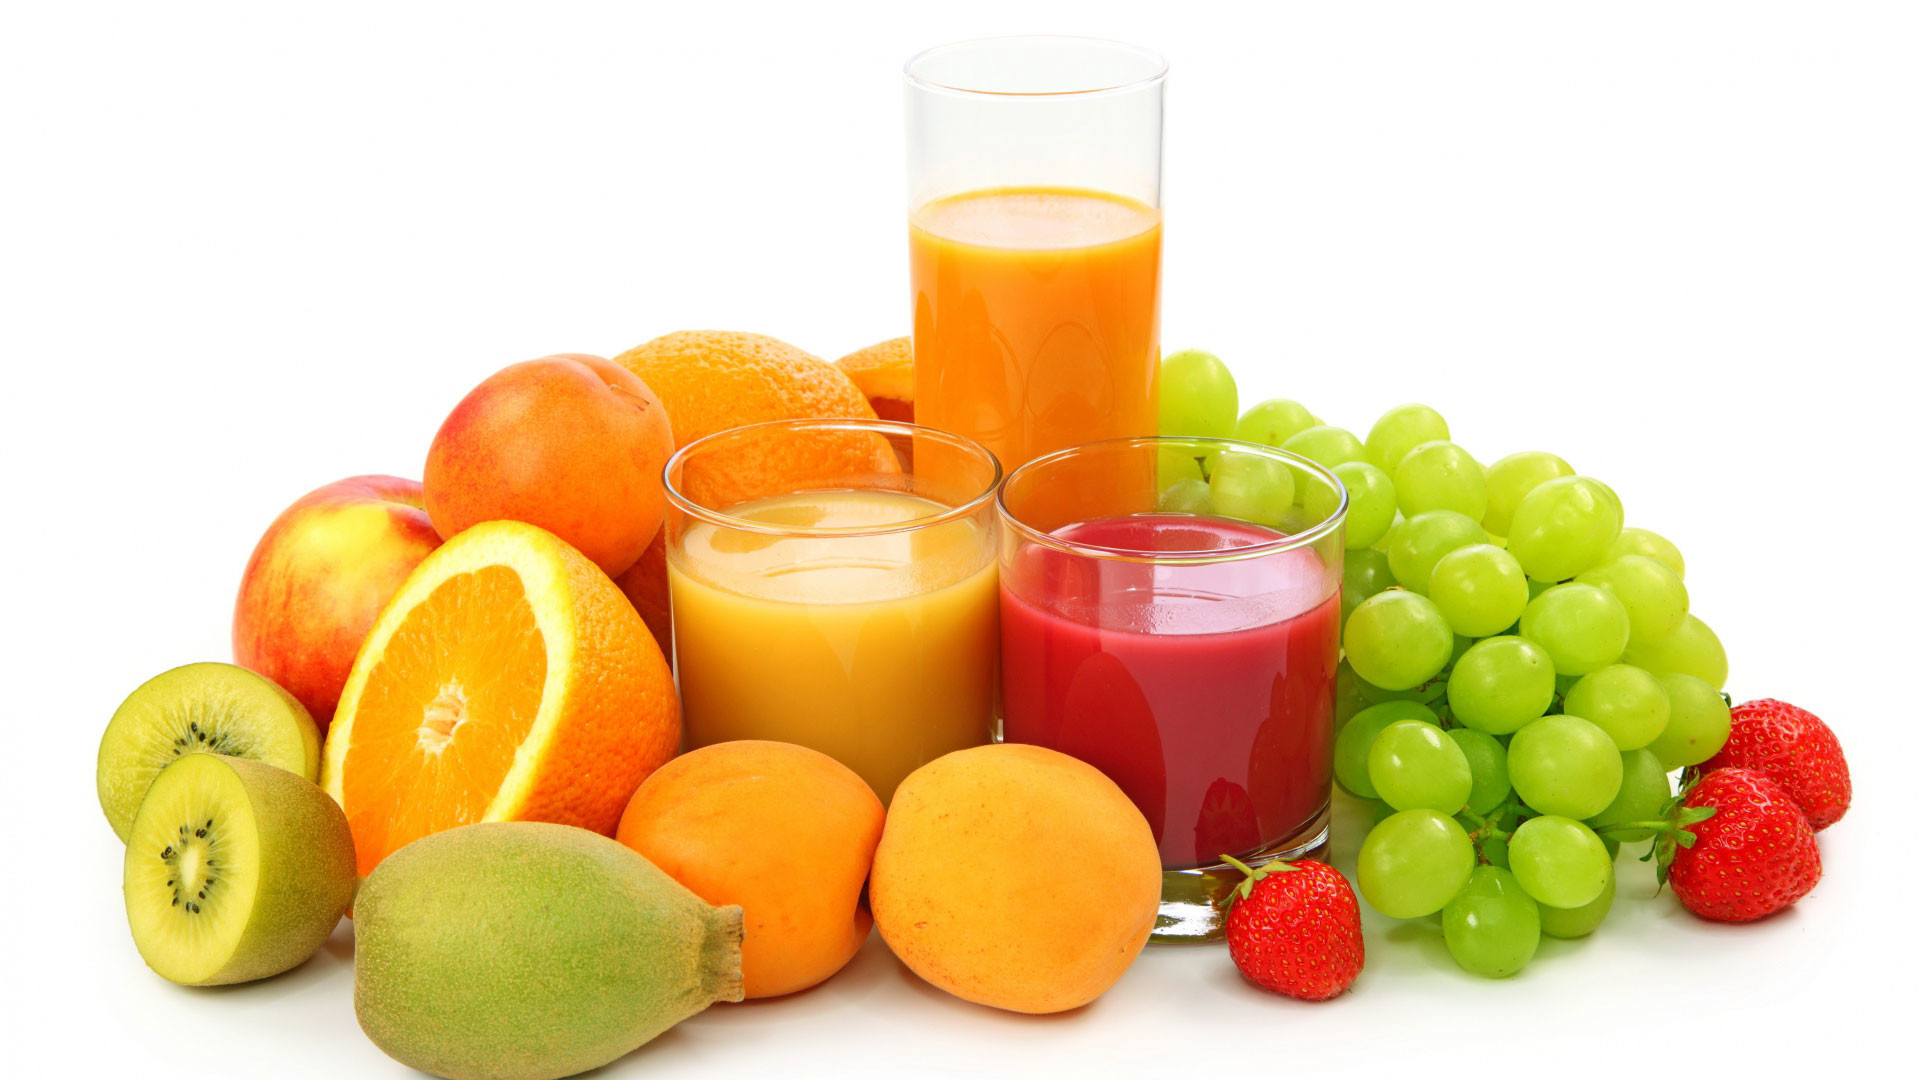 hd pics photos fruits mixed juice glasses desktop background wallpaper